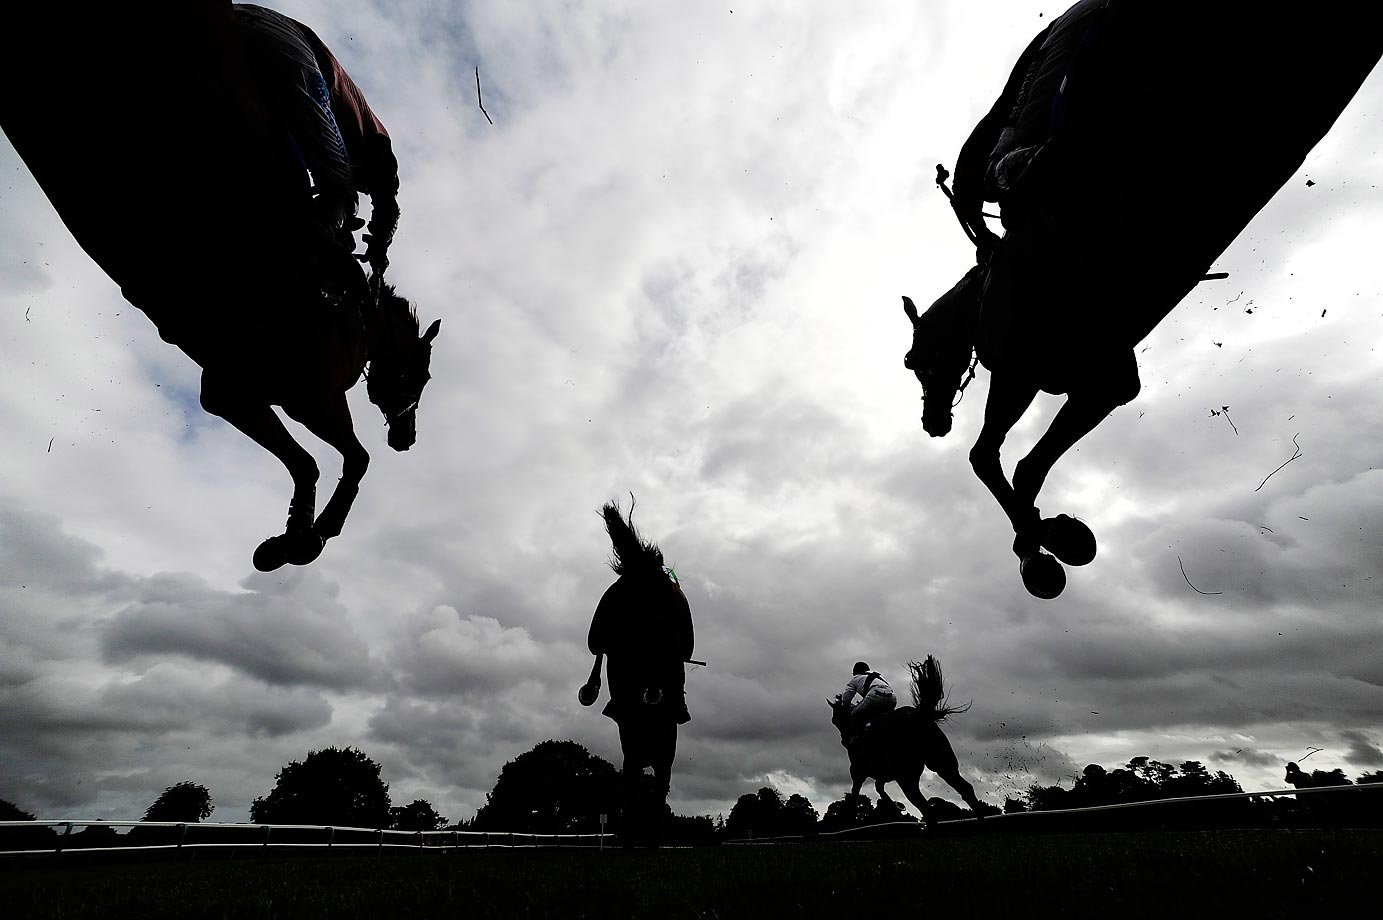 Competitors clear a fence in The £500 Permanent Money Backs Handicap Steeple Chase at Fontwell racecourse on Aug. 28.